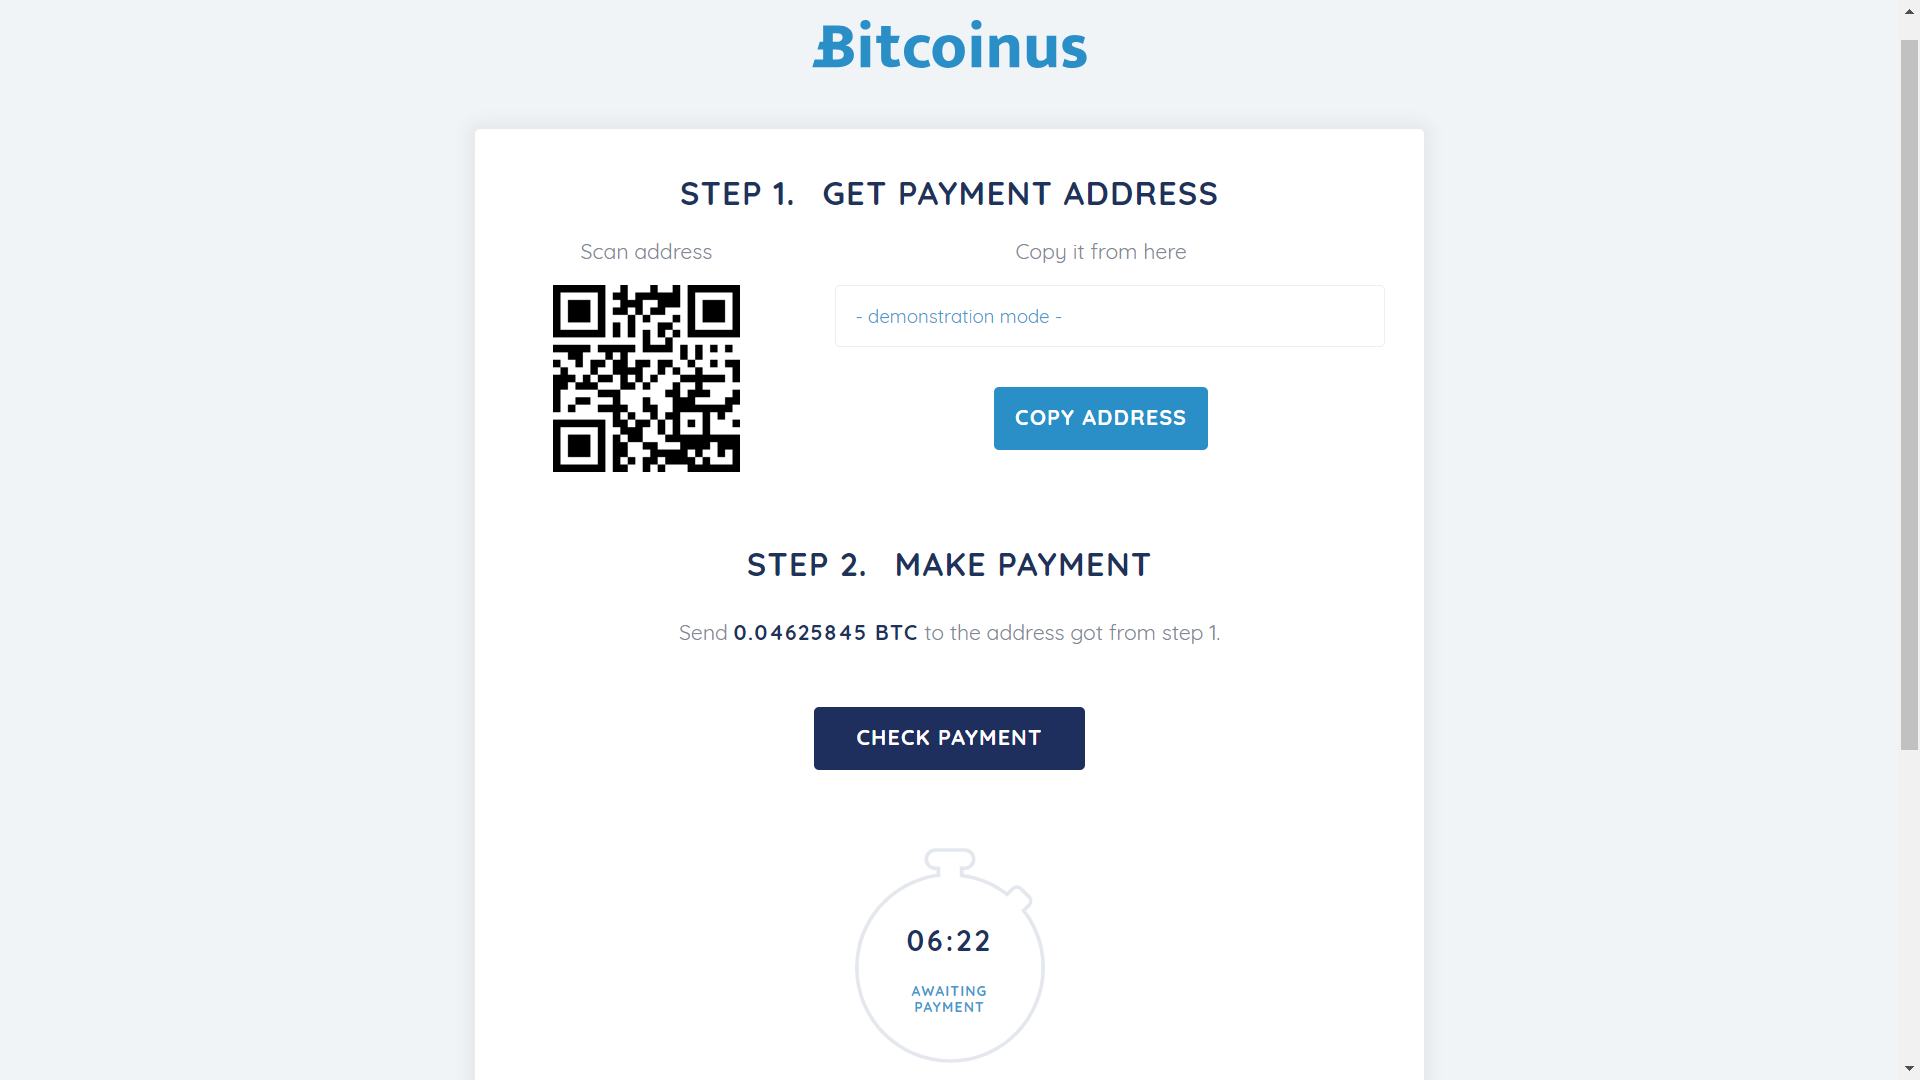 Bitcoinus checkout page 2.